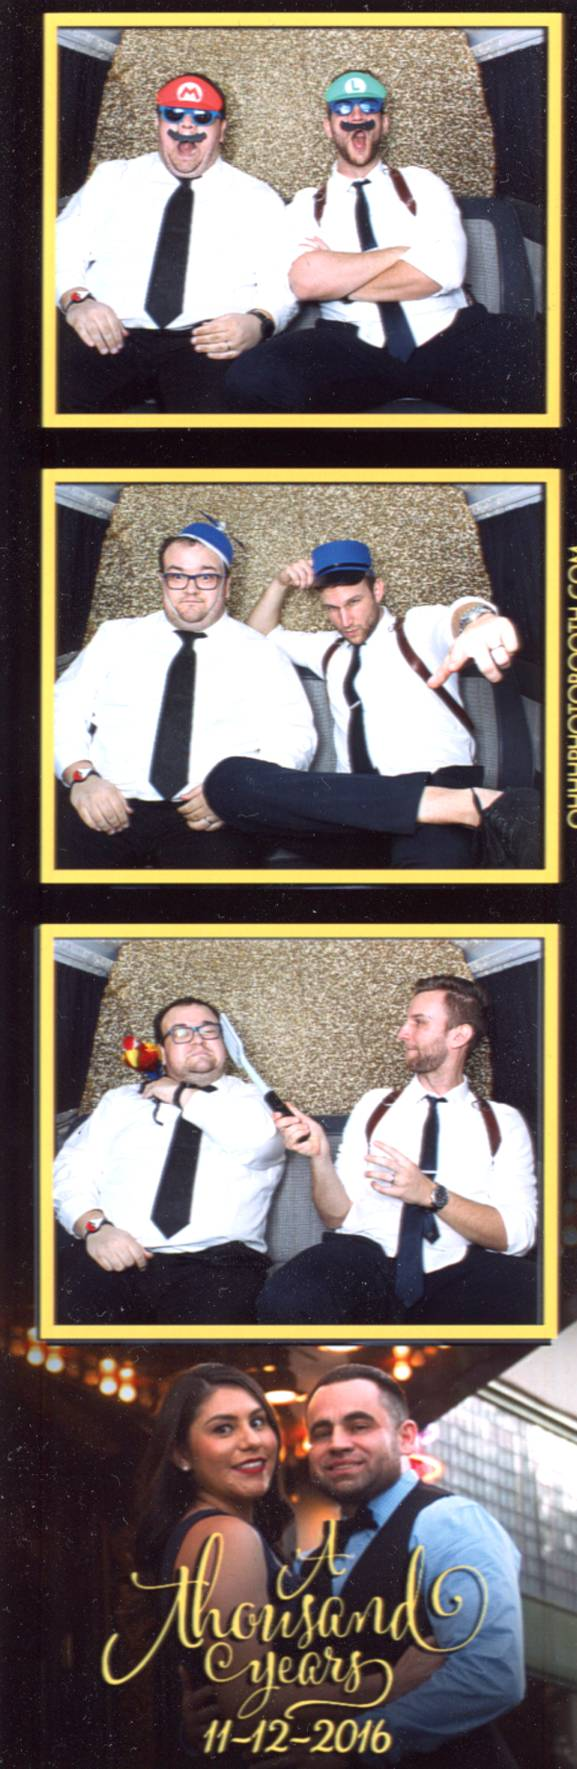 Wedding videographer photo booth